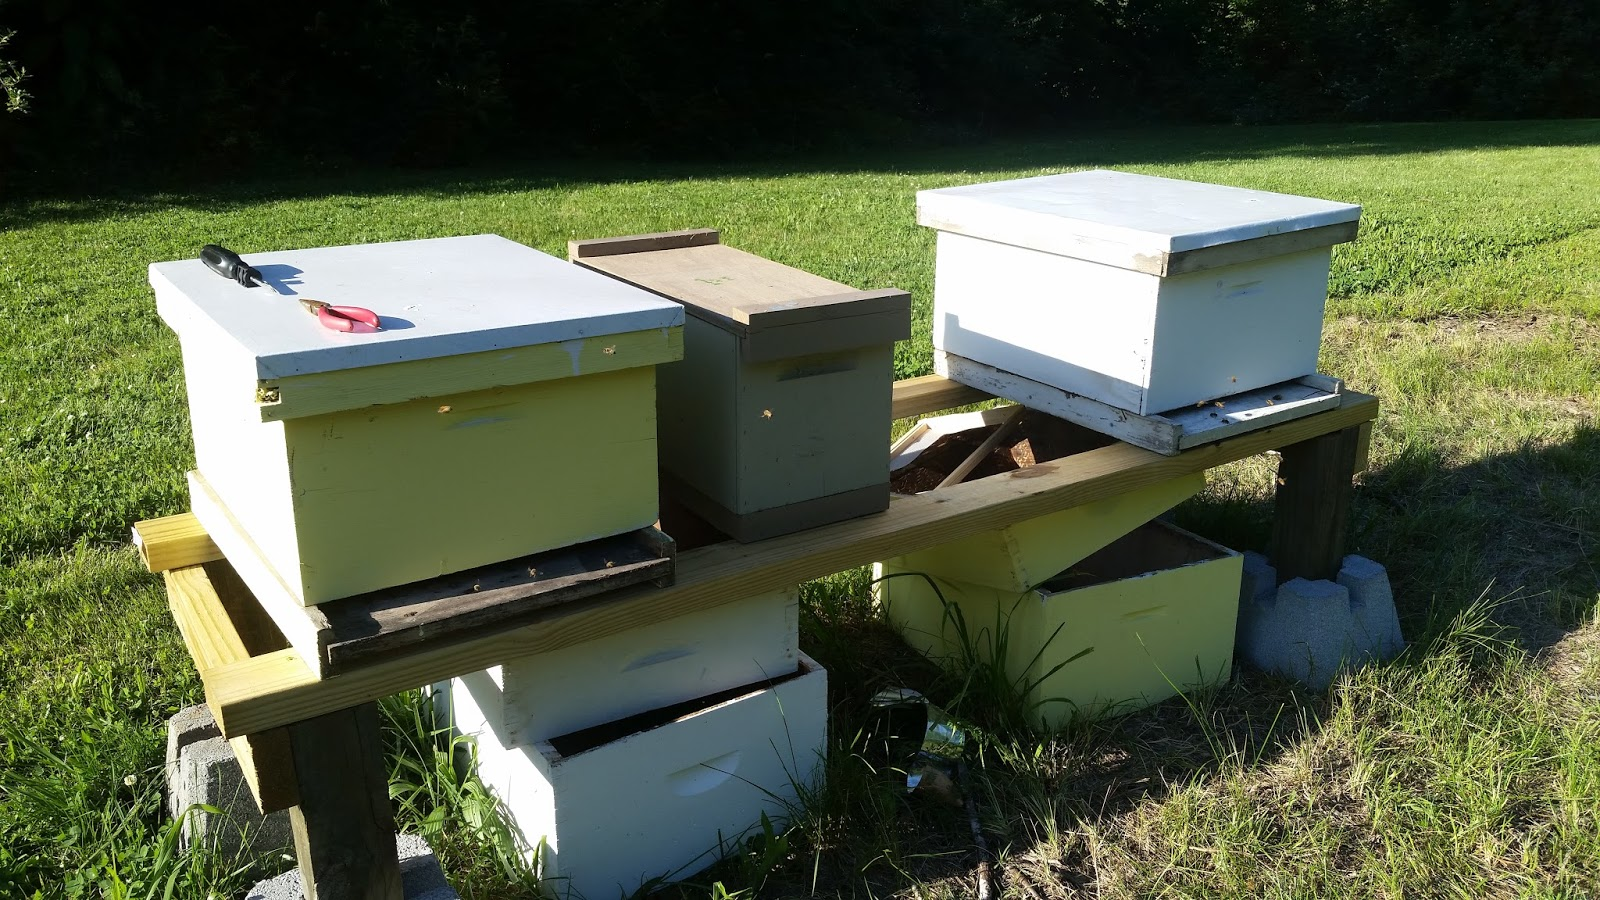 My Top Bar Bee Hives: Trying some Langstroth hives